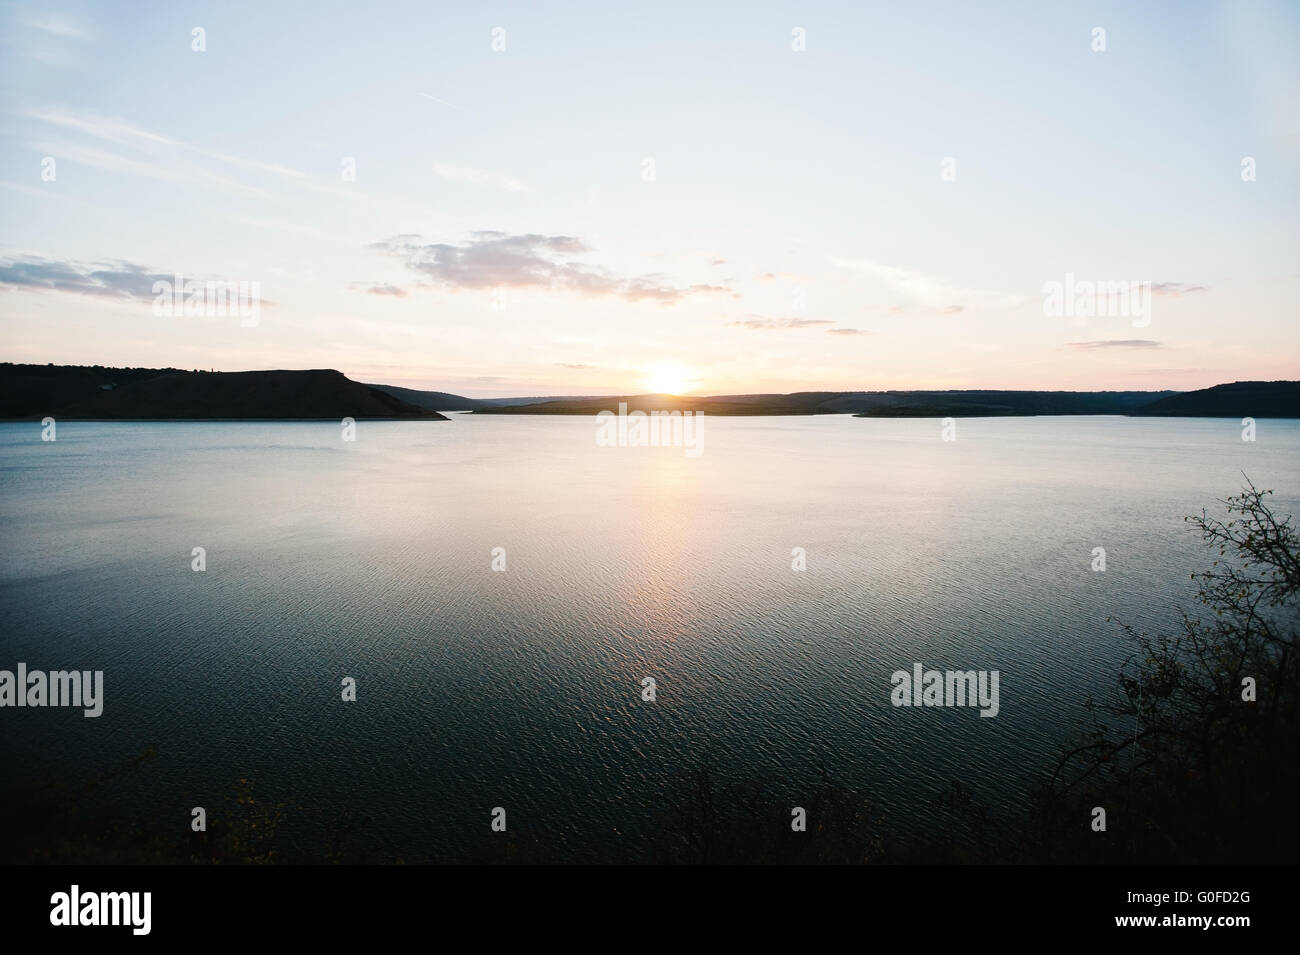 Quie Stockfotos & Quie Bilder - Alamy